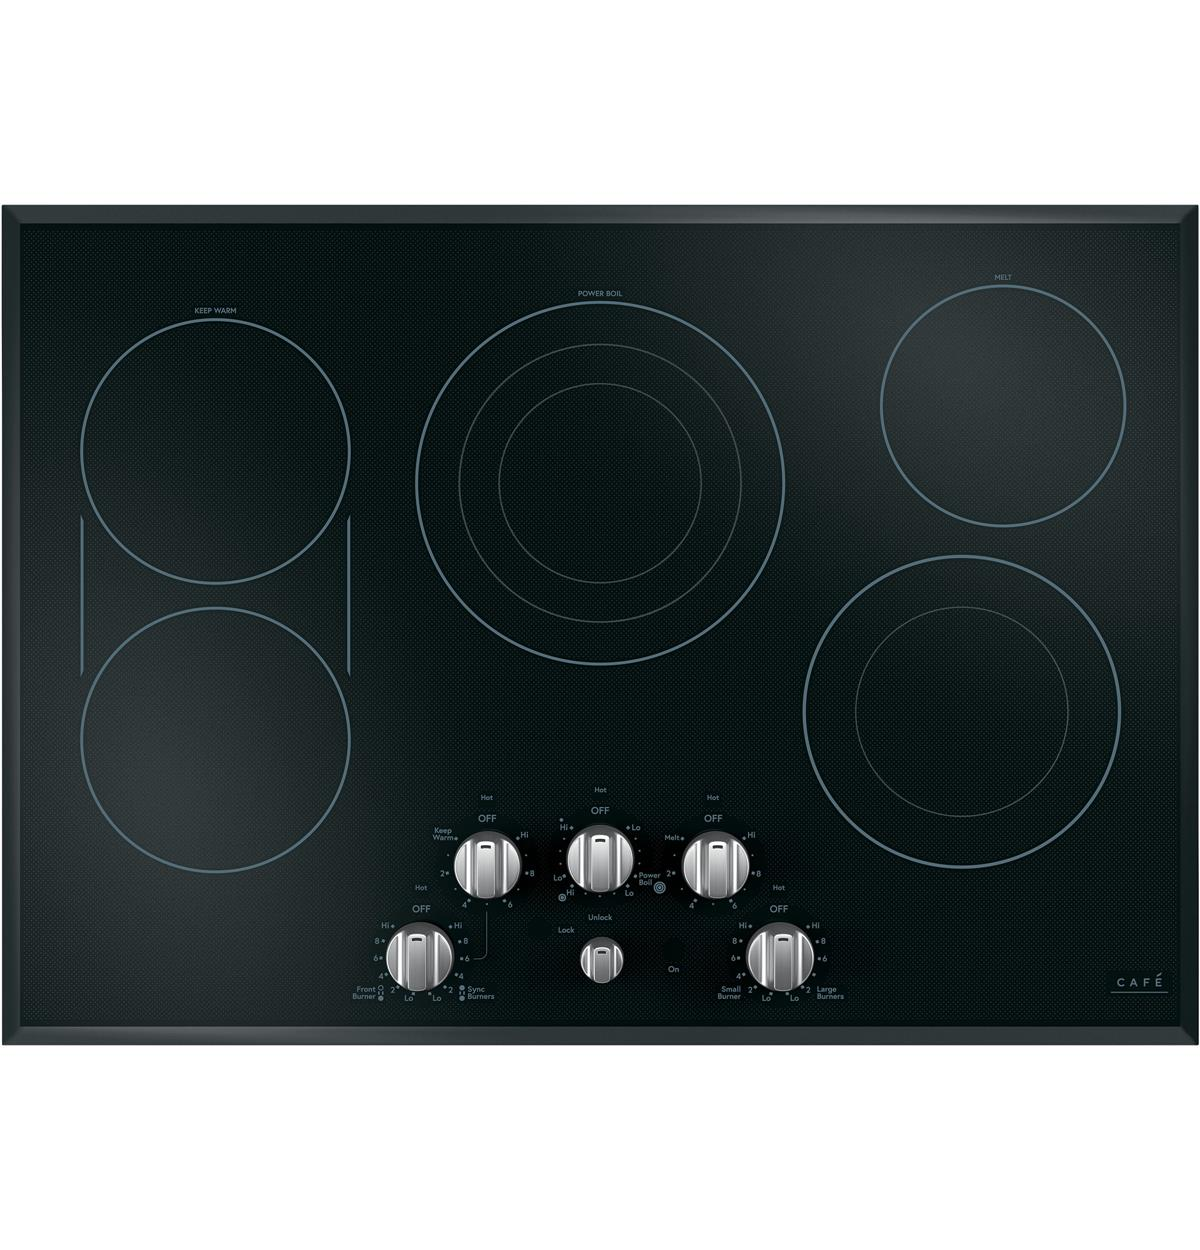 "Café™ 30"" Built-In Knob Control Electric Cooktop"